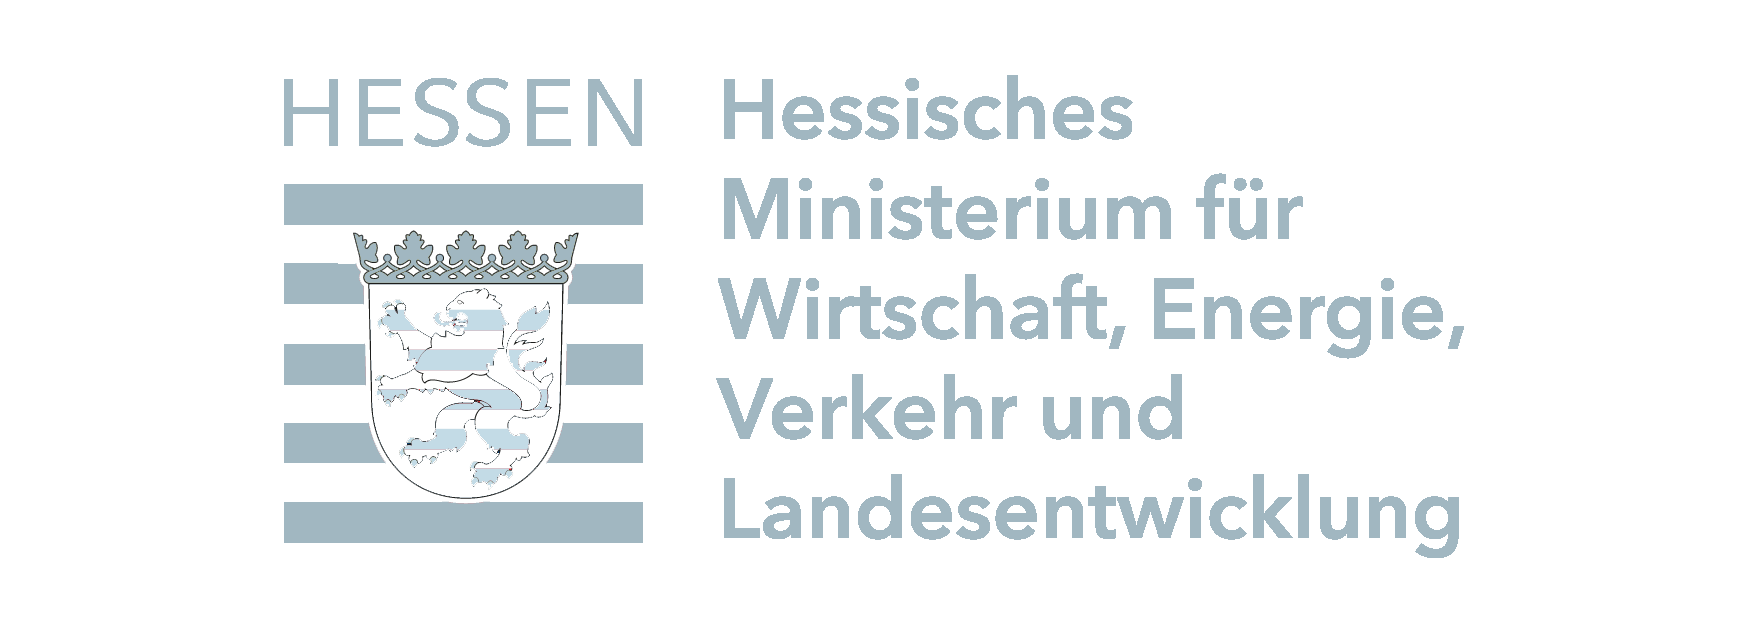 Ministerium_HE.png